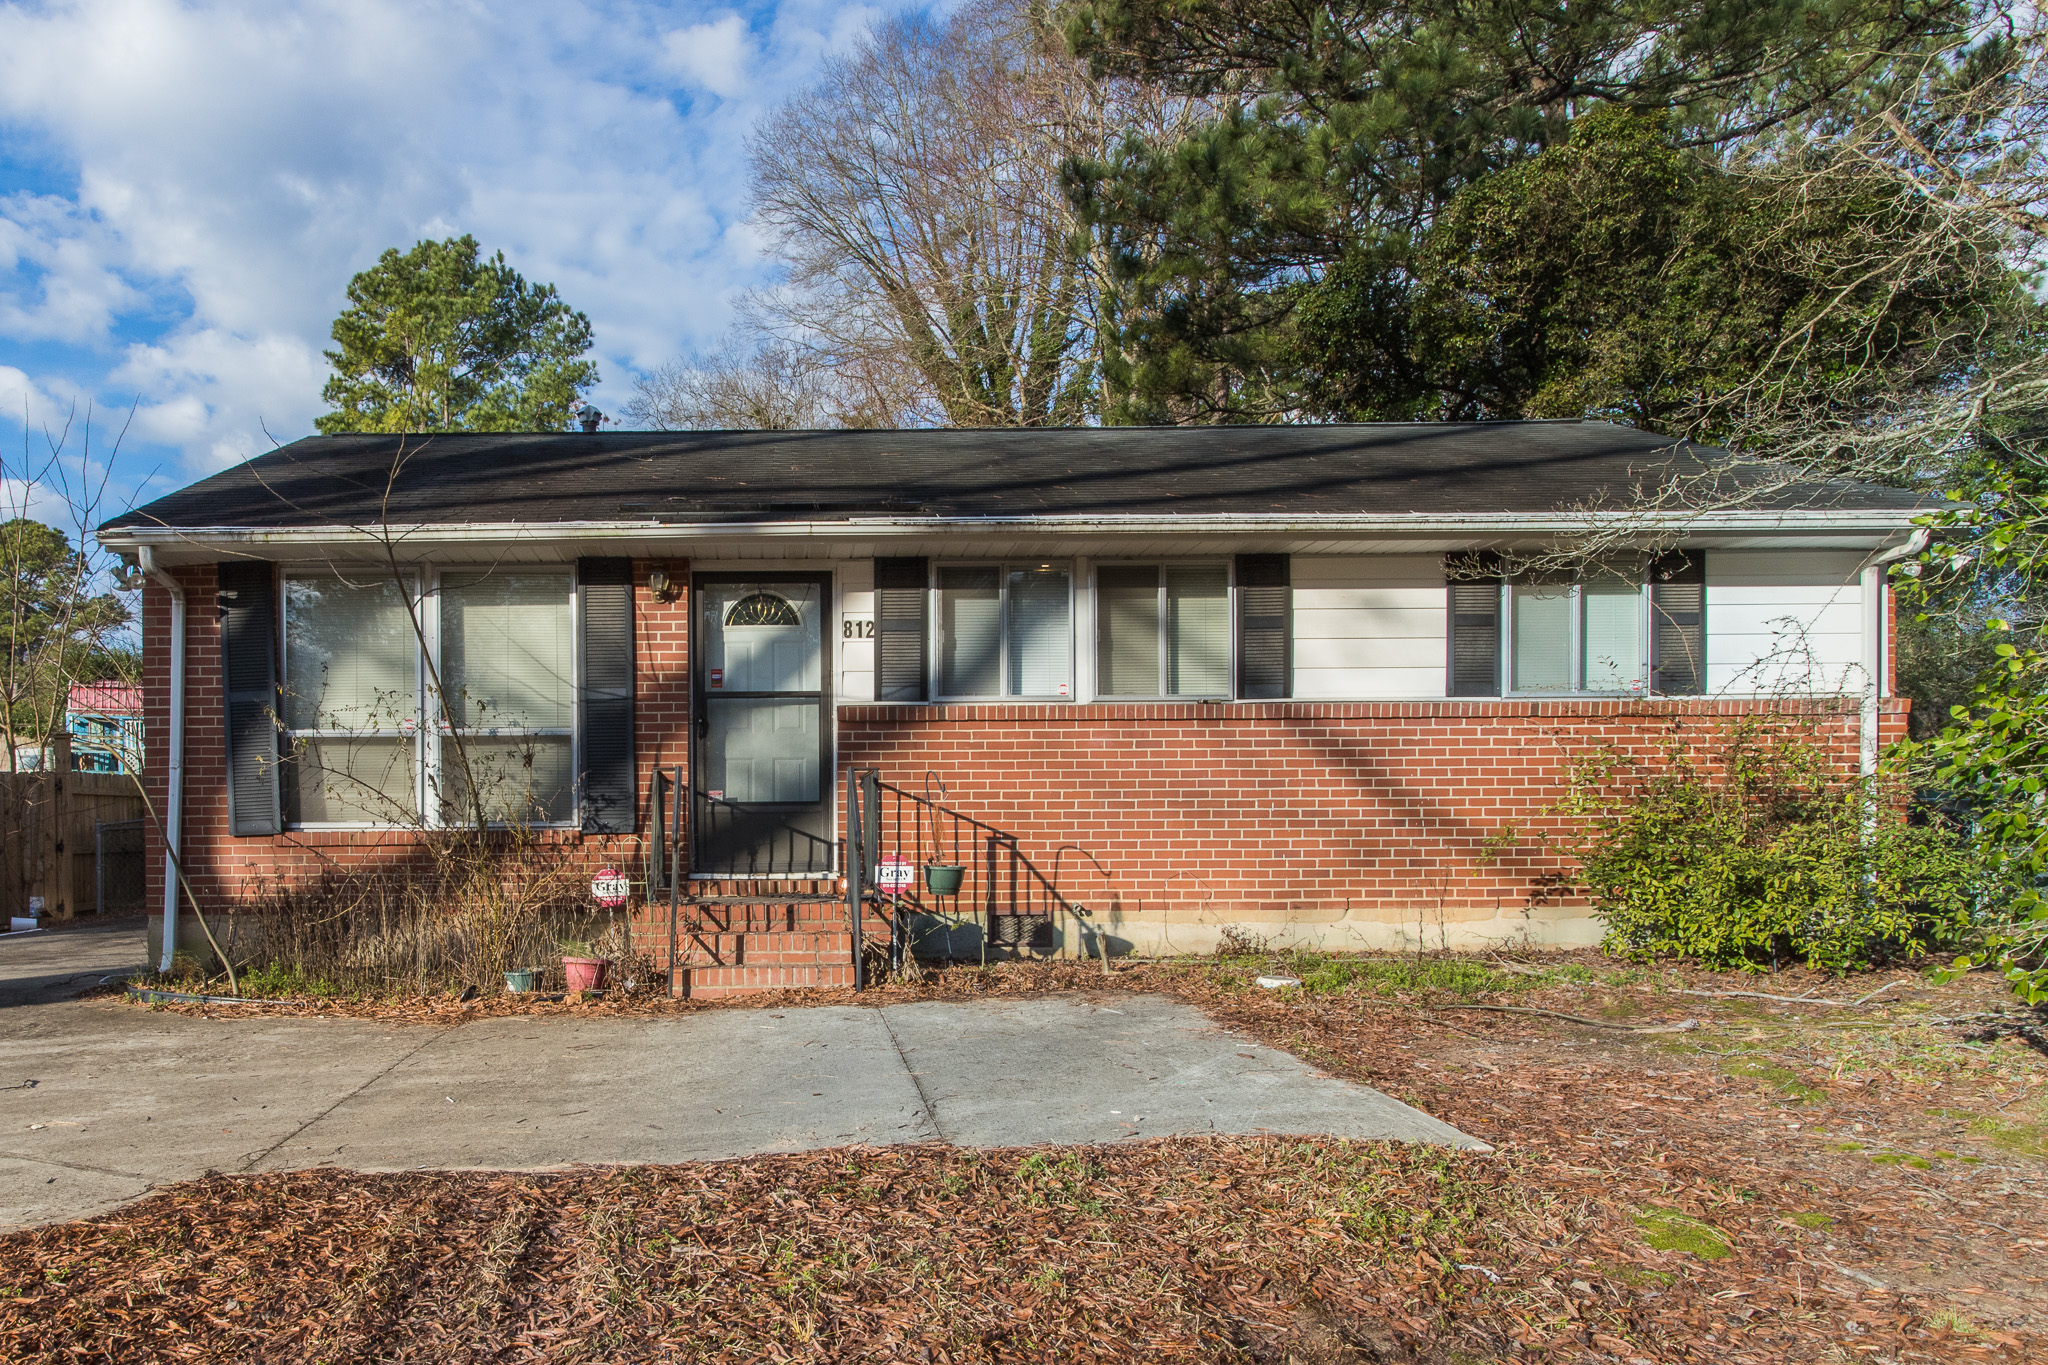 812 Belmont Dr, Raleigh, NC